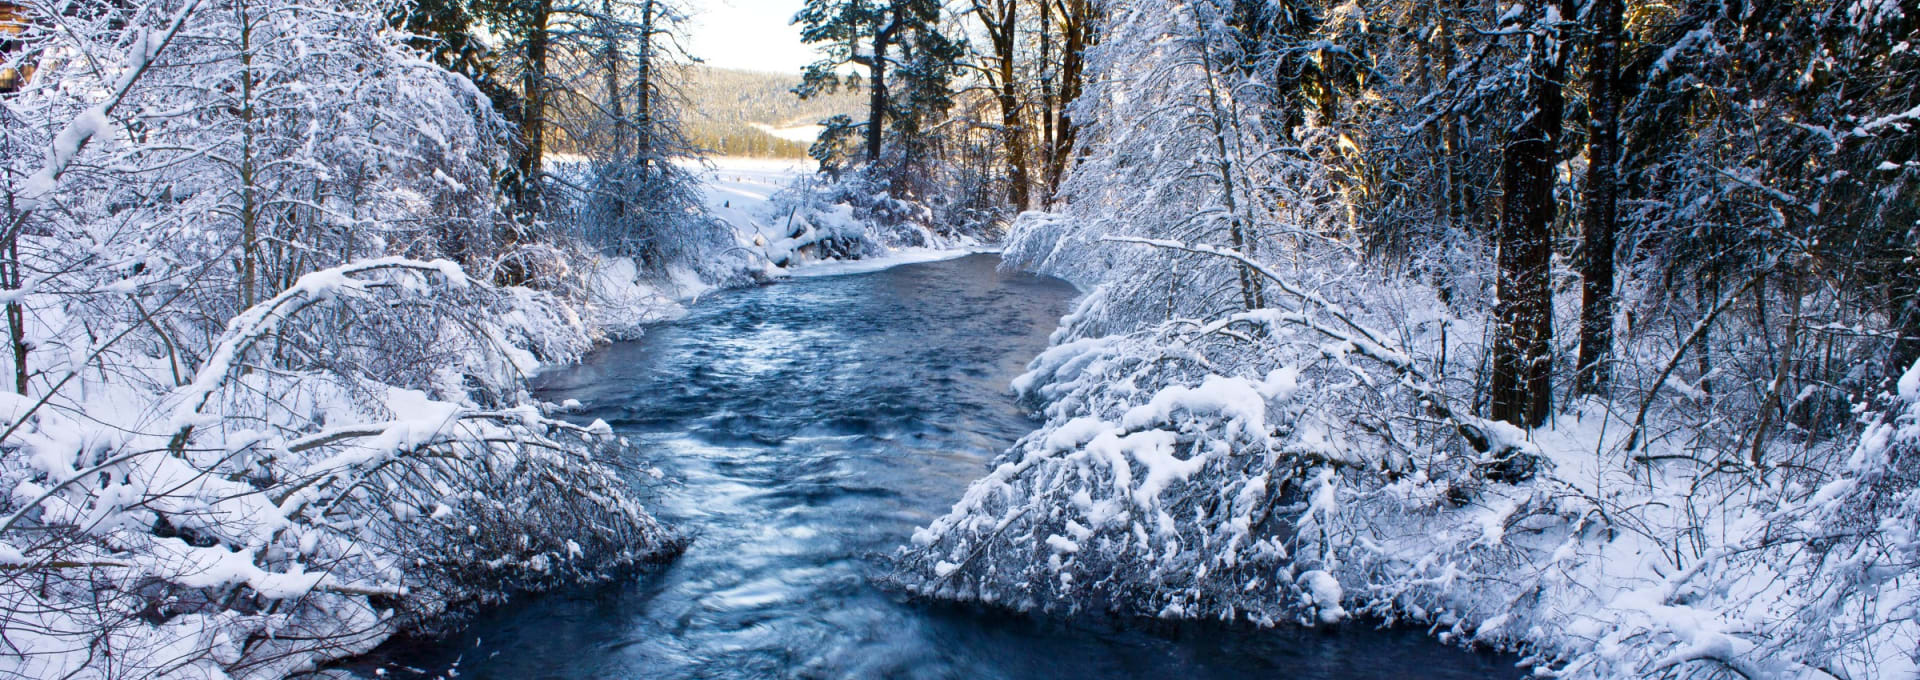 Snowy-TroutCreek_headerCrop_6631-w1920.jpg